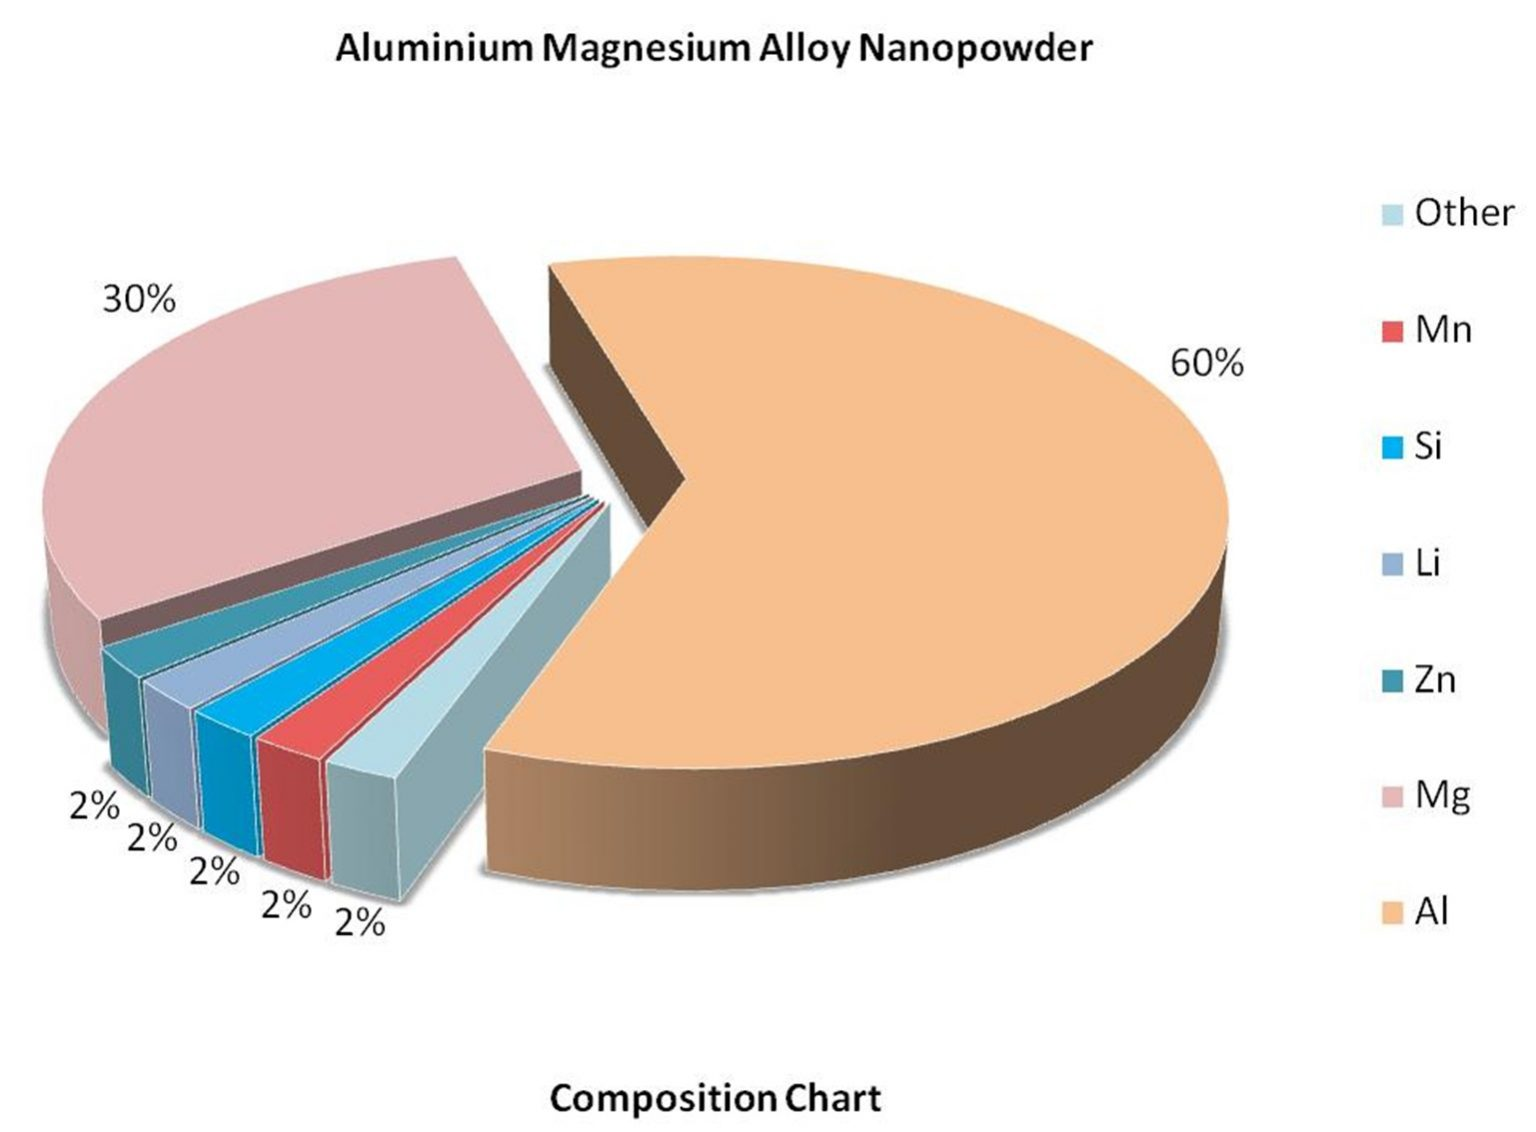 Composition Chart - Al:Mg Alloy Nanoparticles